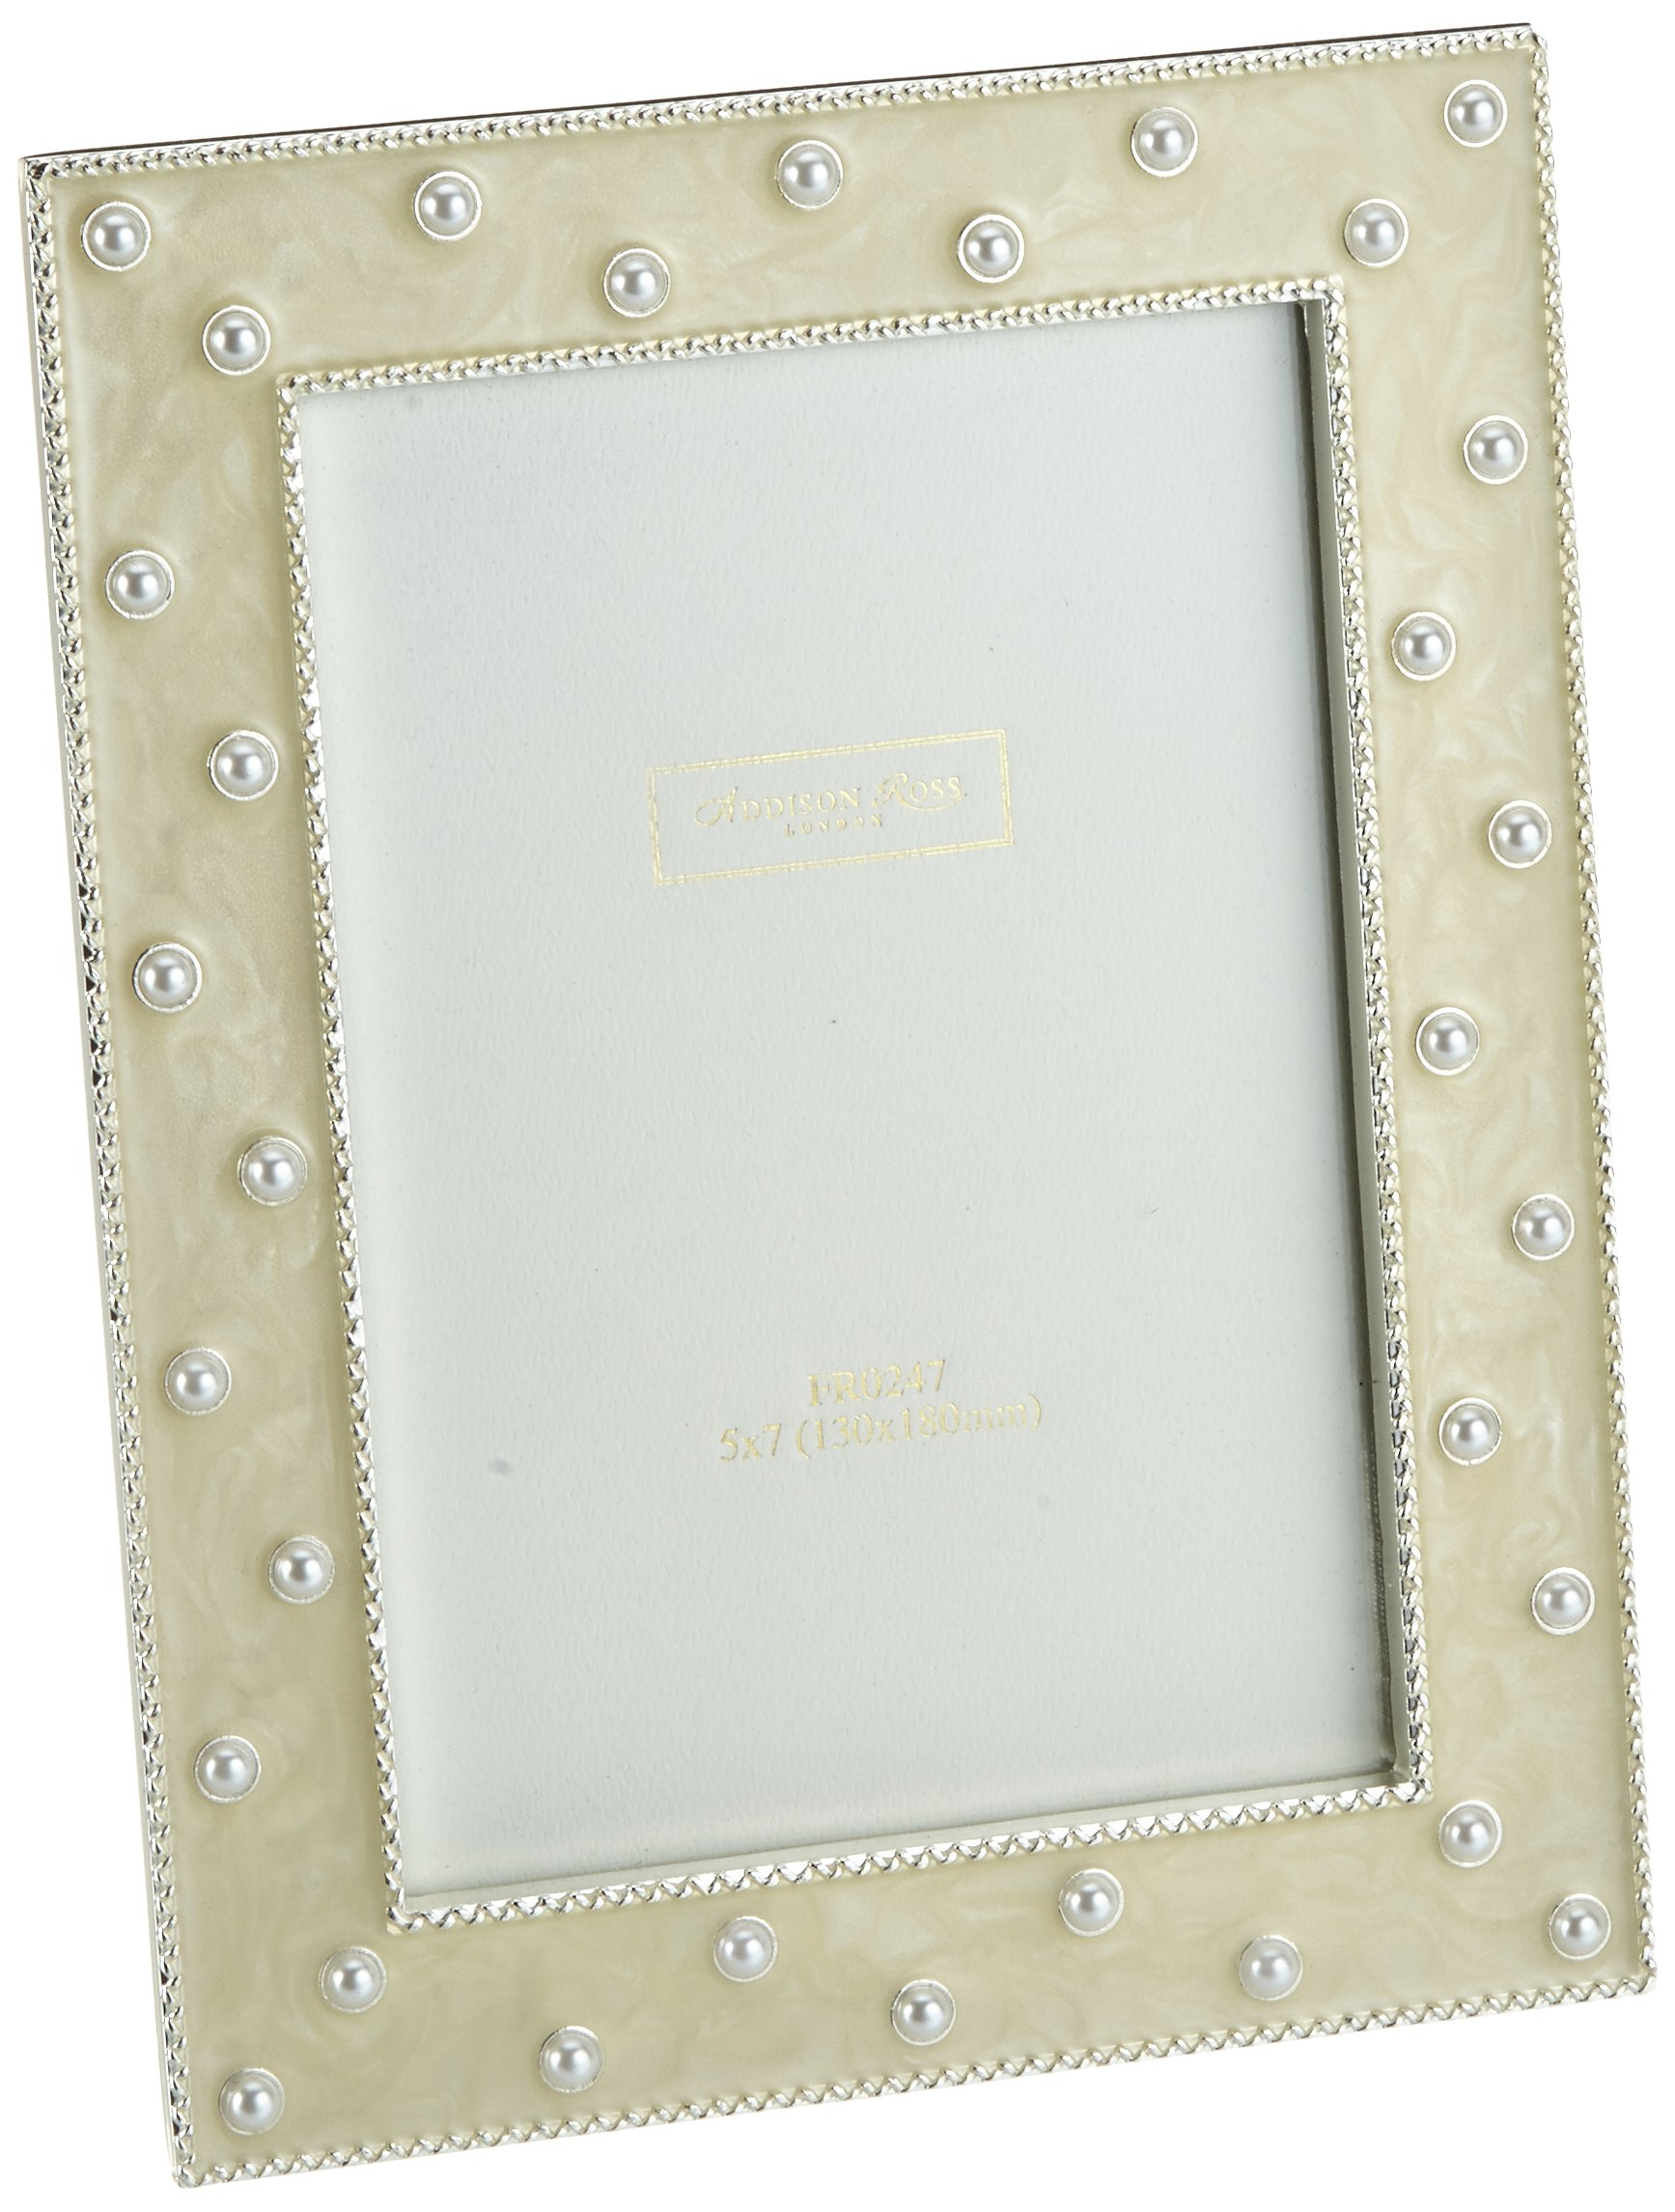 5x7 Startburst Cream Enamel 5 x 7 Inches Wedding Photo Frame Addison Ross